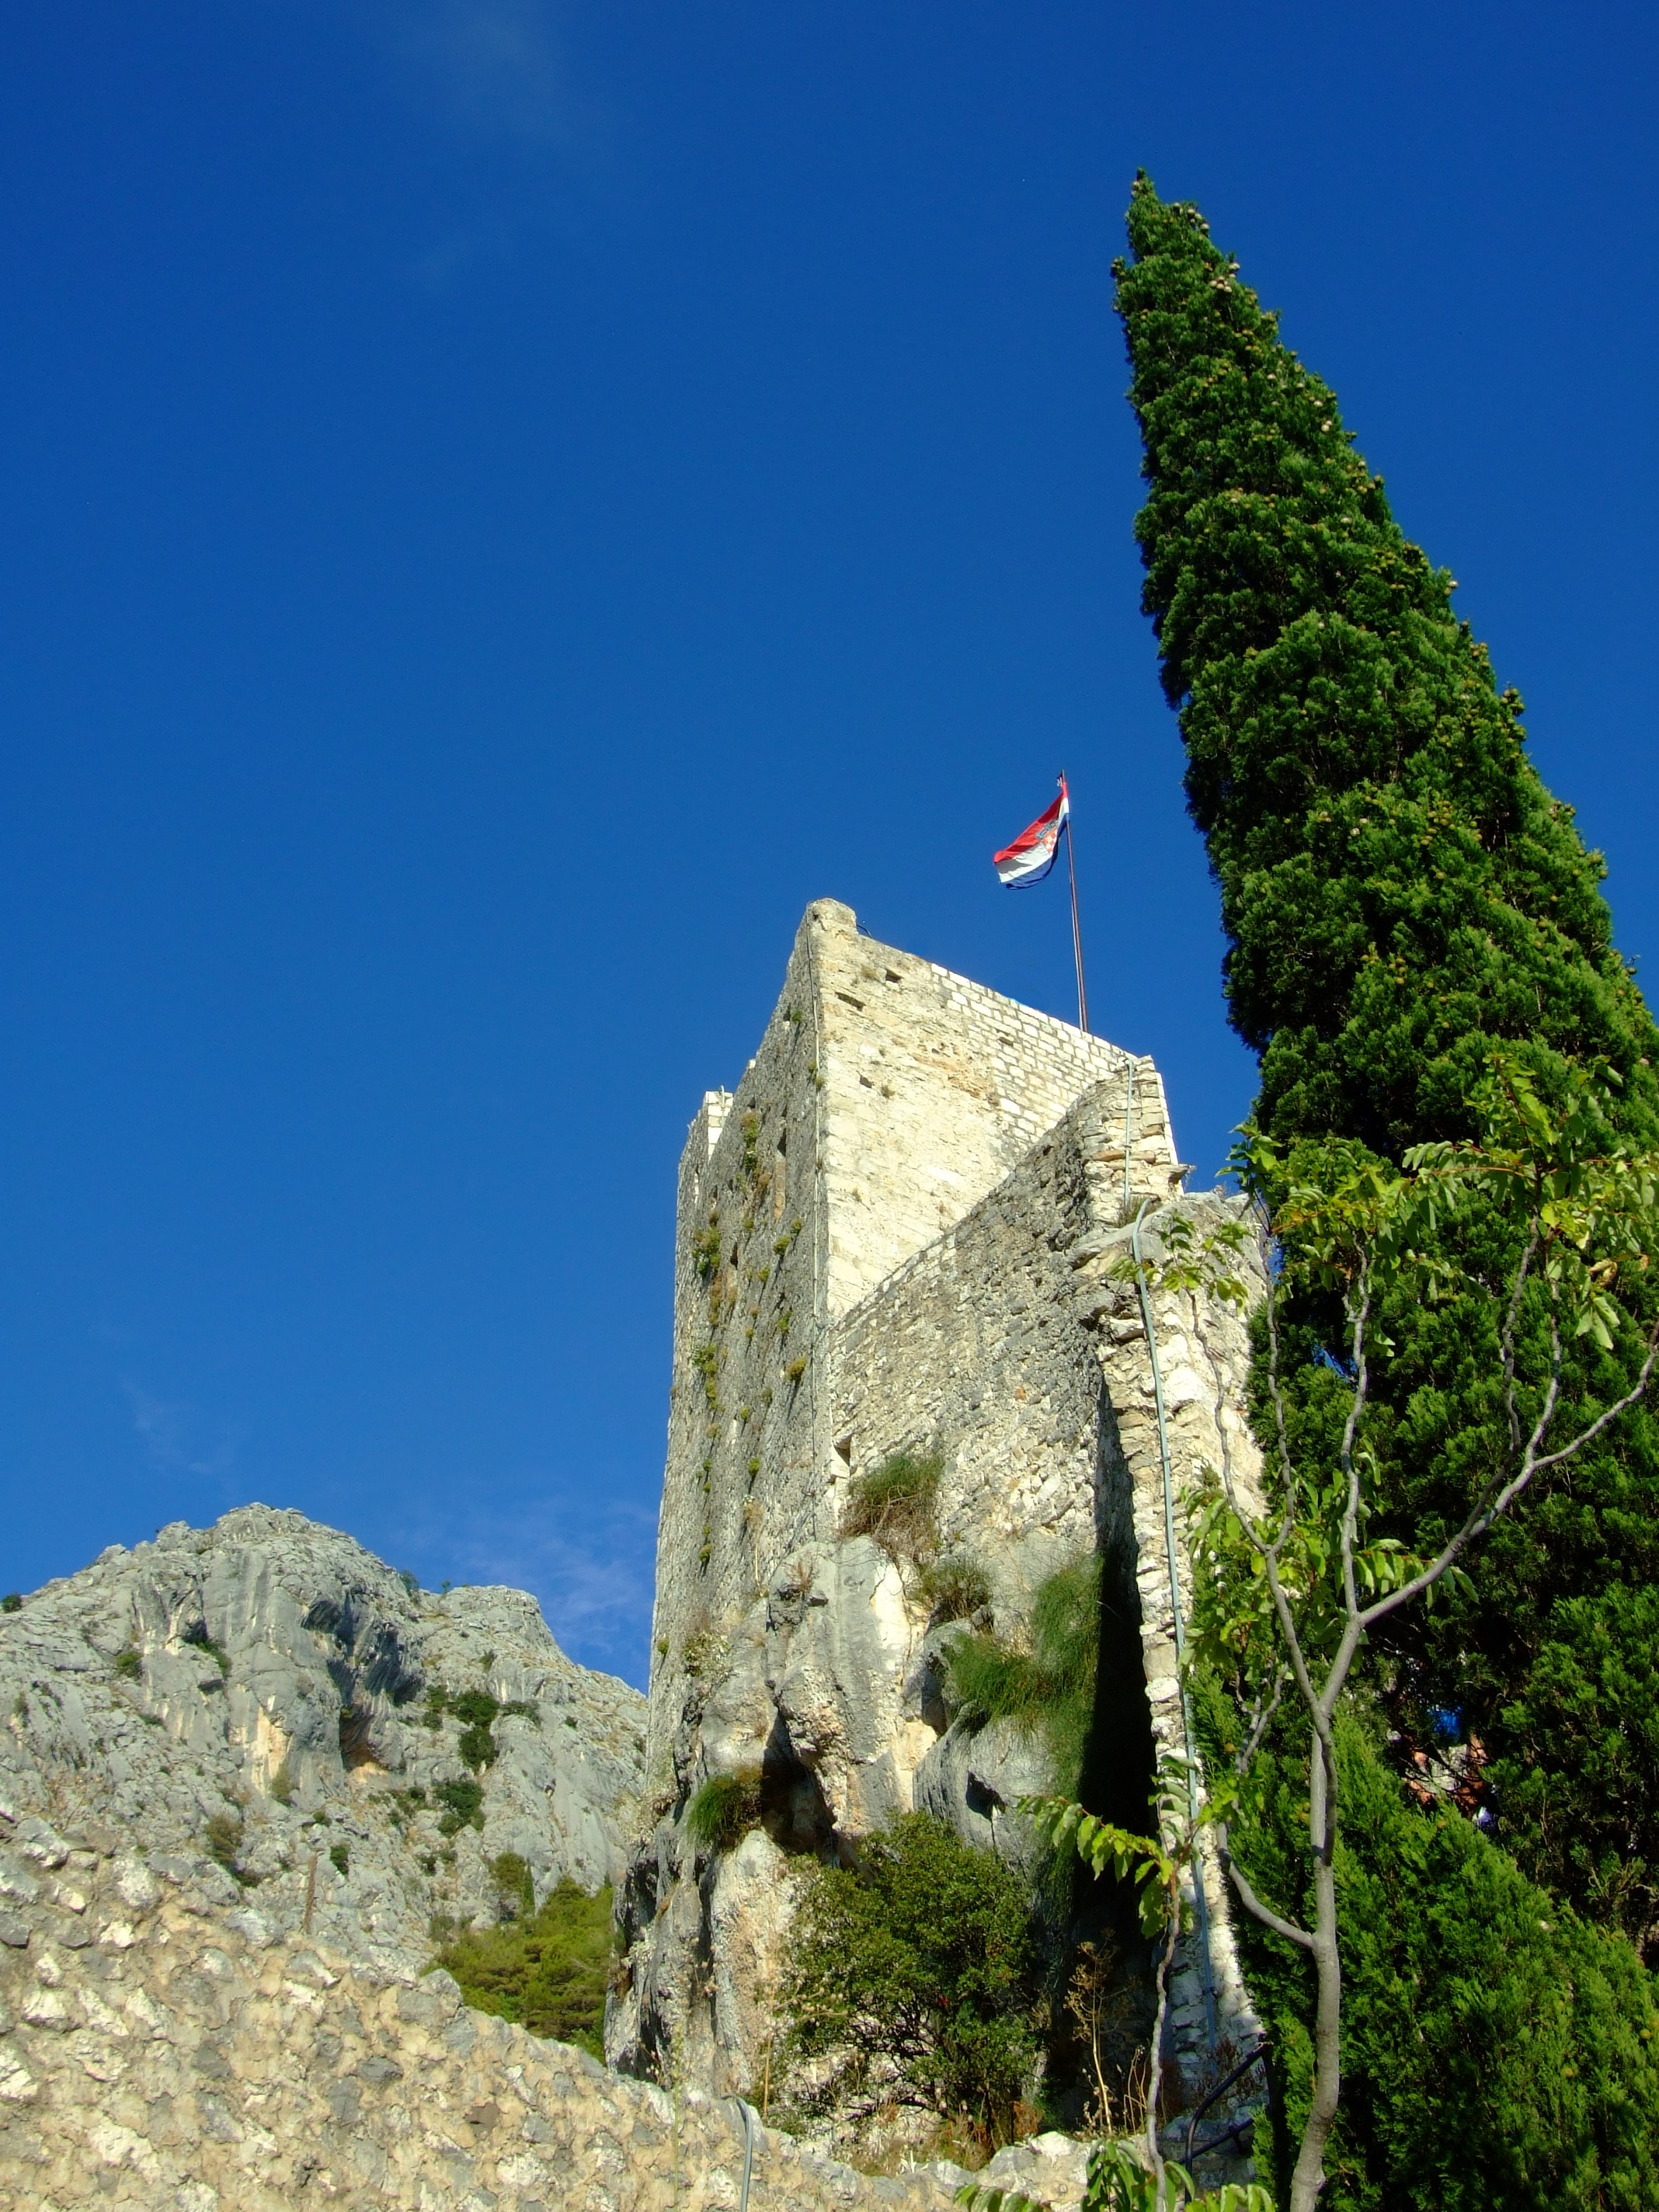 The Romanesque upper castle consists of four floors reached by an internal staircases with a final exit achieved by climbing a short ladder to the open top some 245m (804 ft) above the town. The castle tower you can see today is a comparatively recent restoration, albeit crafted in its original form with its original stones by the local population after it was destroyed by a lightning strike in 1988.